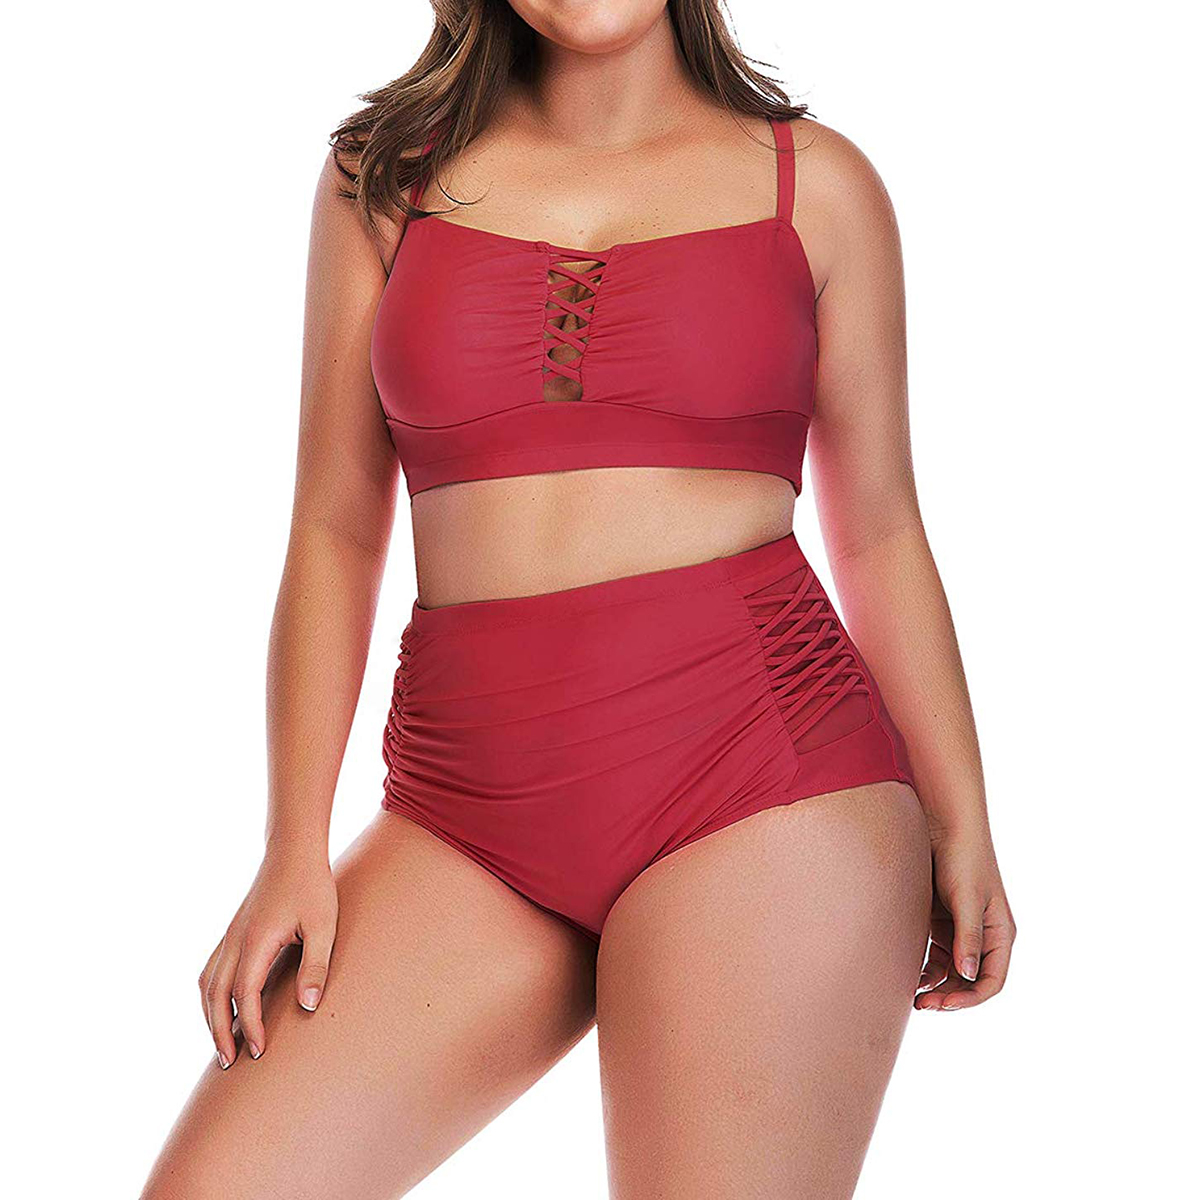 yomoko-womens-bandage-swimsuit